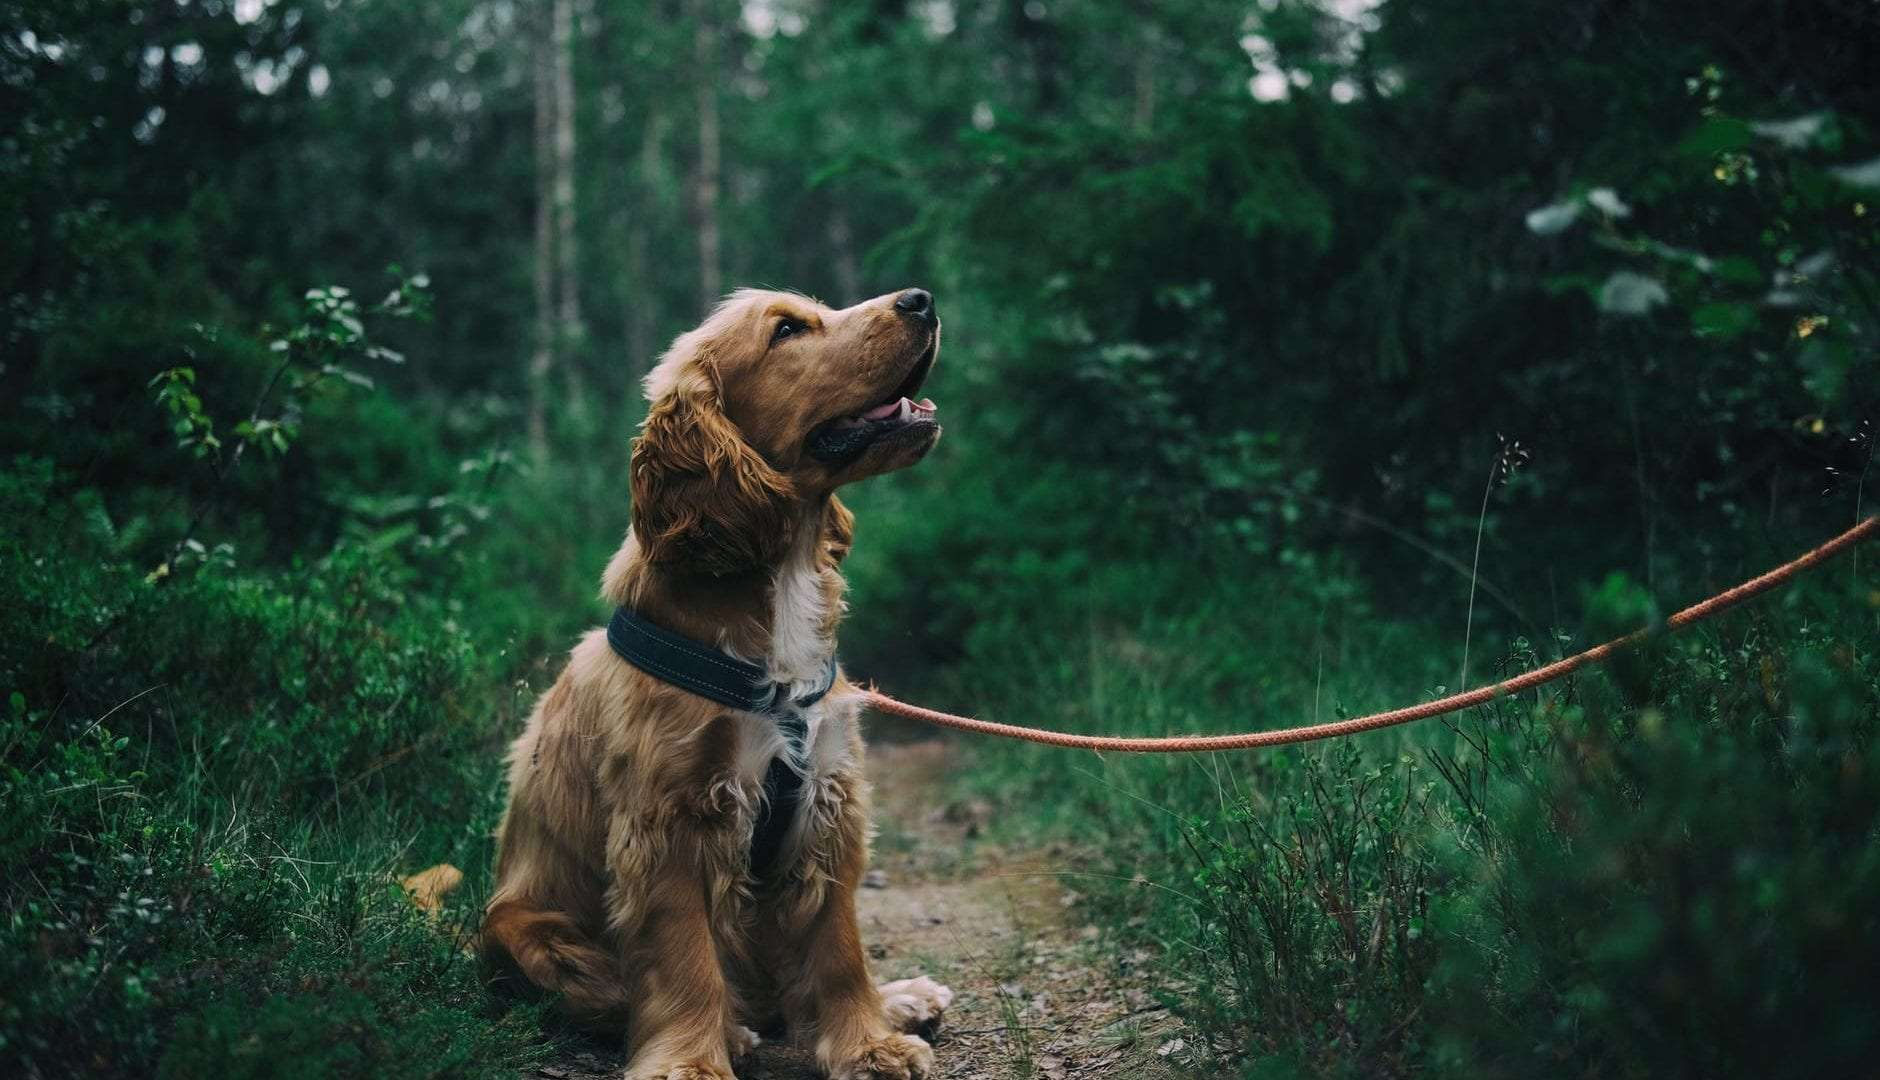 Dog Walking: What Are the Health Benefits for You and Your Dog